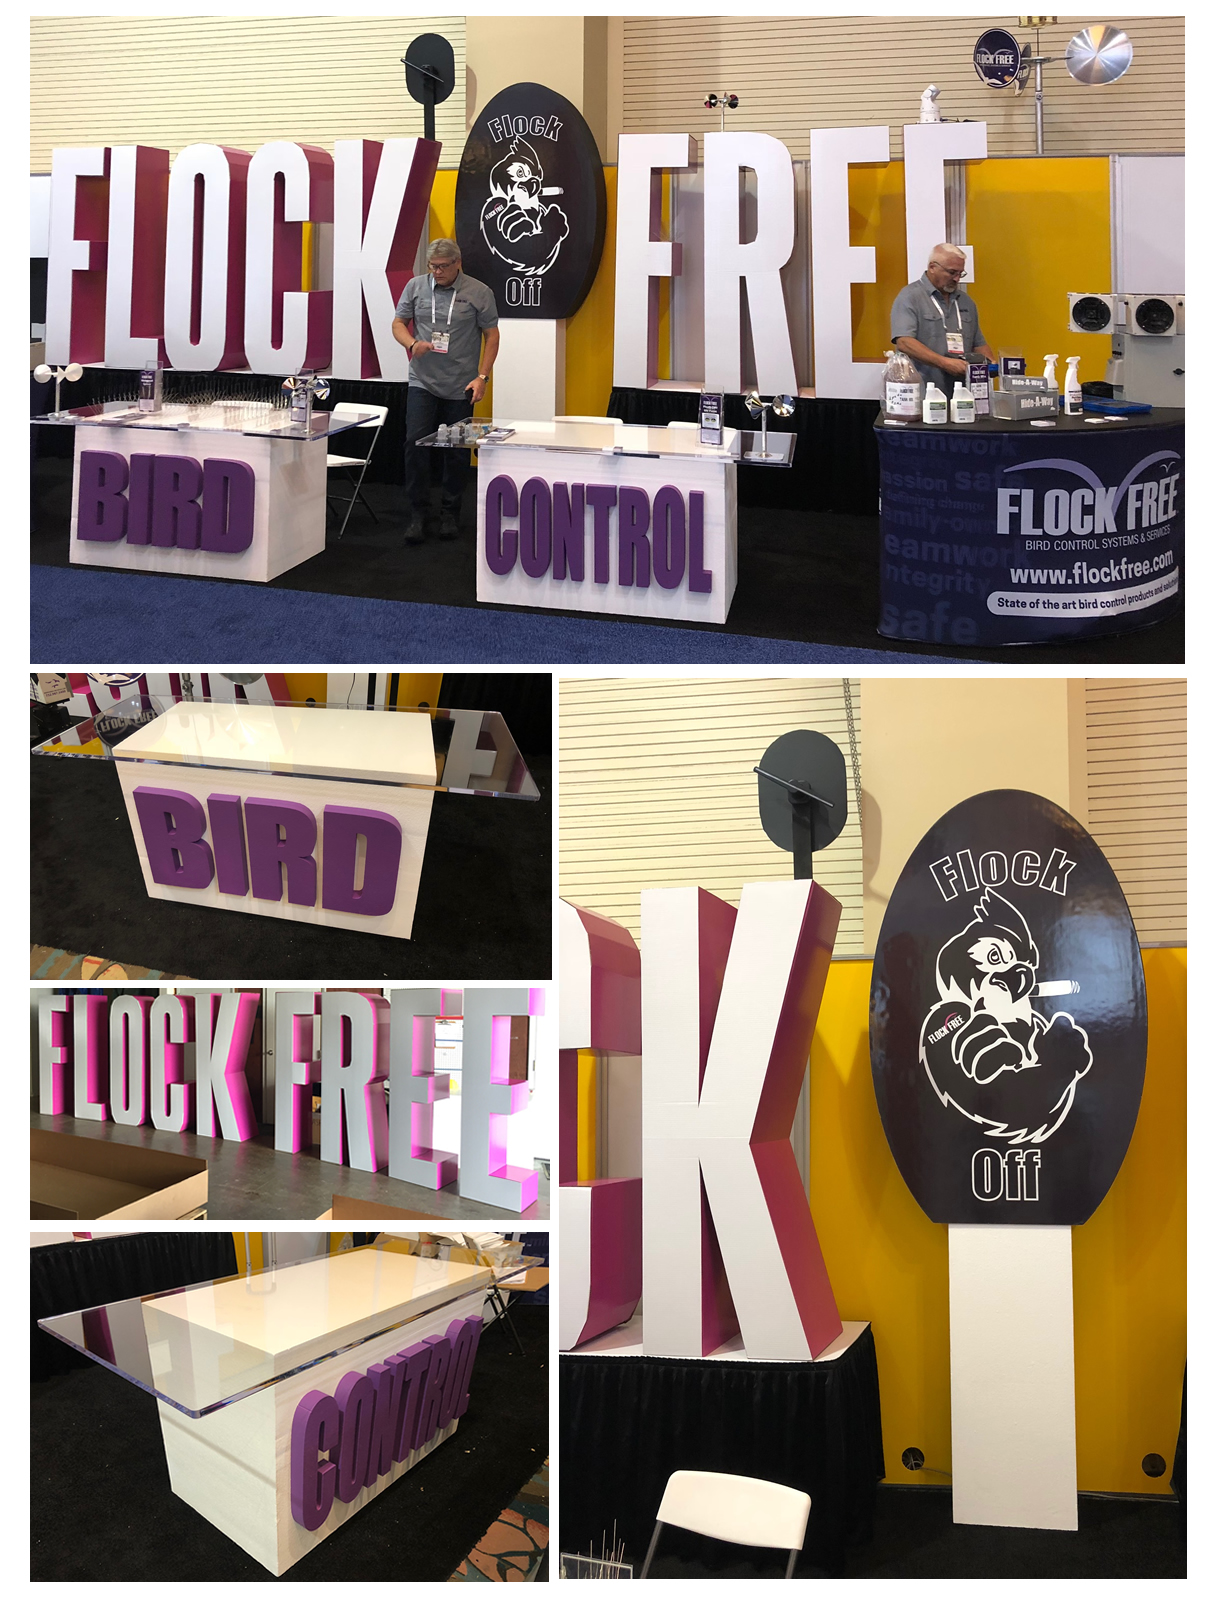 Custom Foam Table Cardboard Letters and Print on Foam Logo for Flock Free Tradeshow